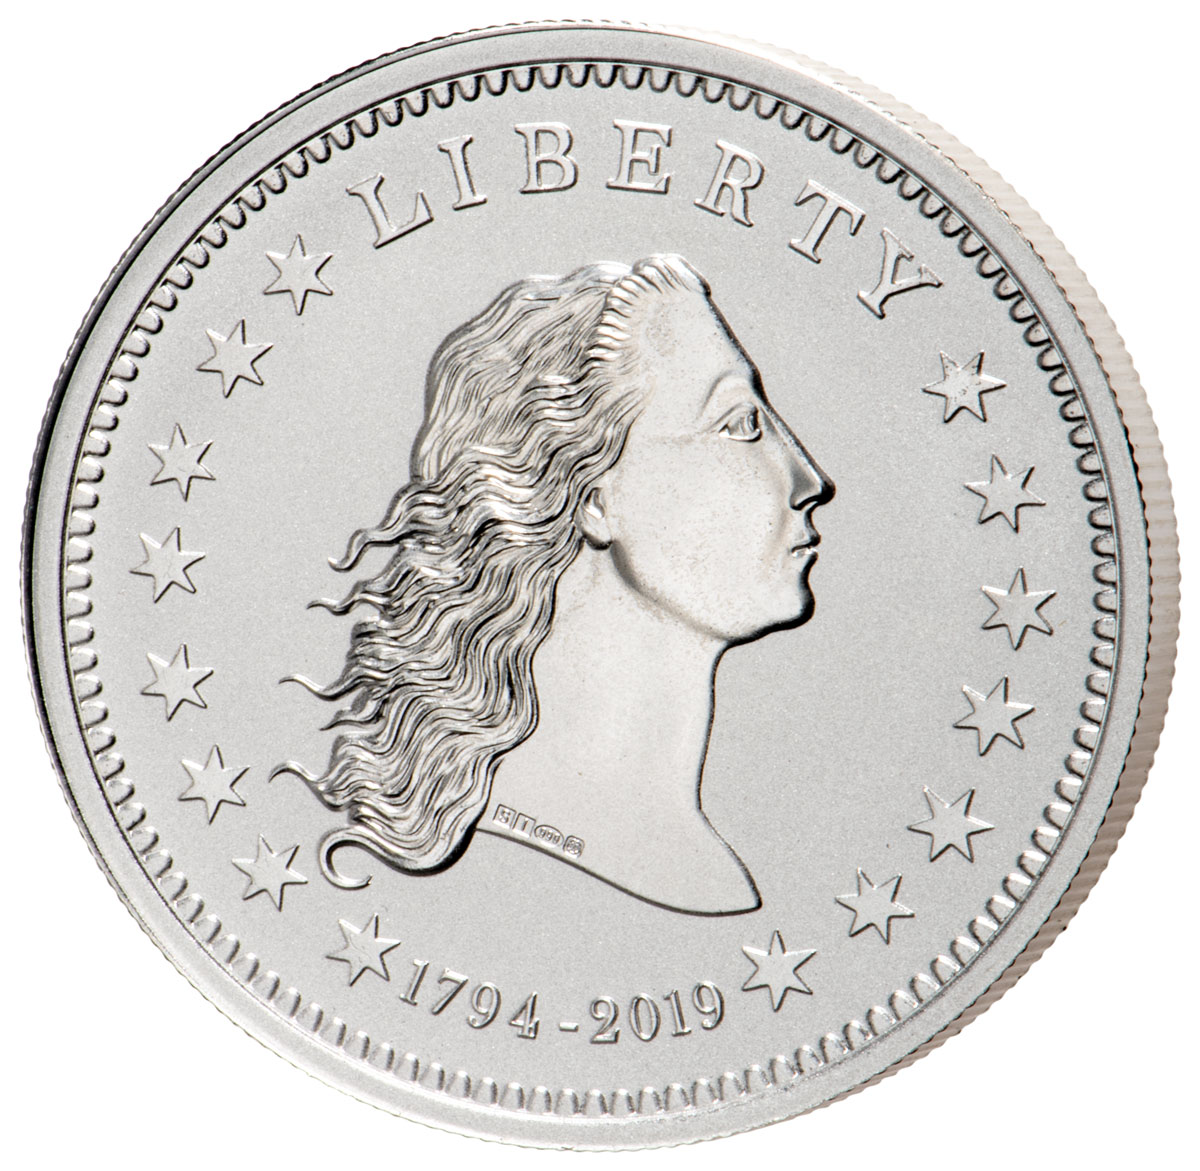 1794-2019 Smithsonian - America's First Silver Dollar 1 oz Silver Reverse Proof Medal GEM Proof